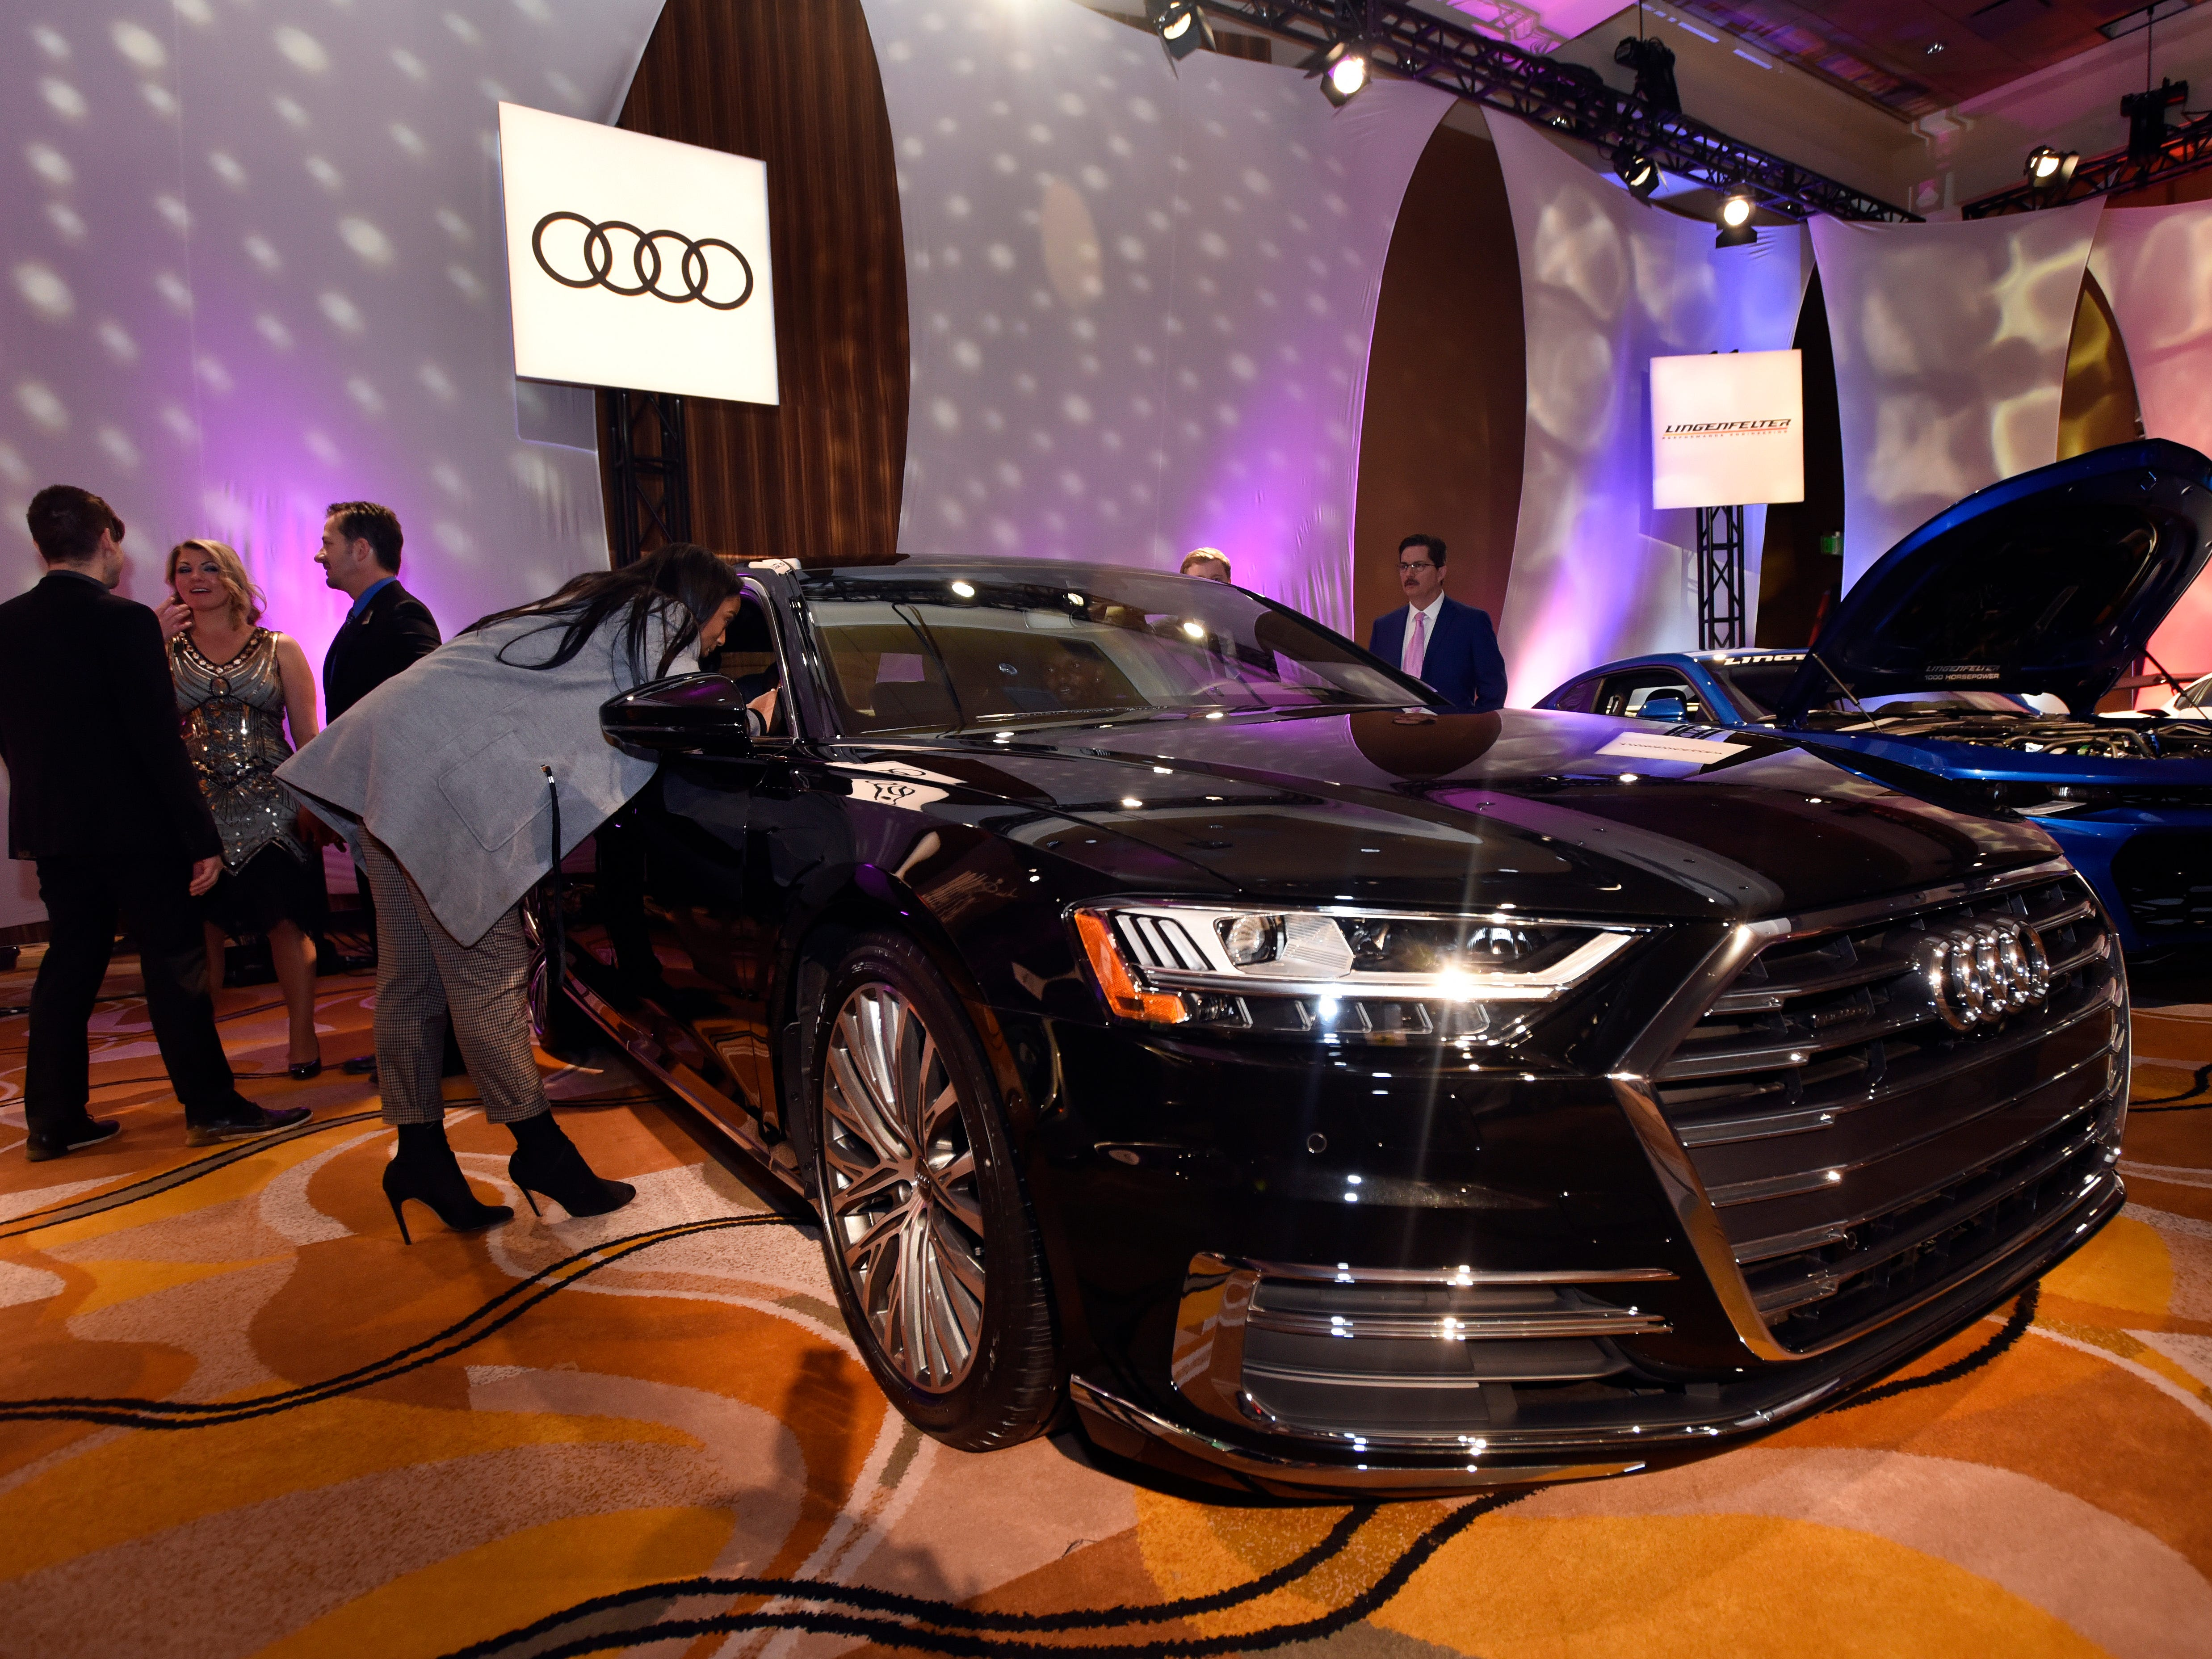 Attendees look over luxury vehicles, such as this Audi, at The Gallery.